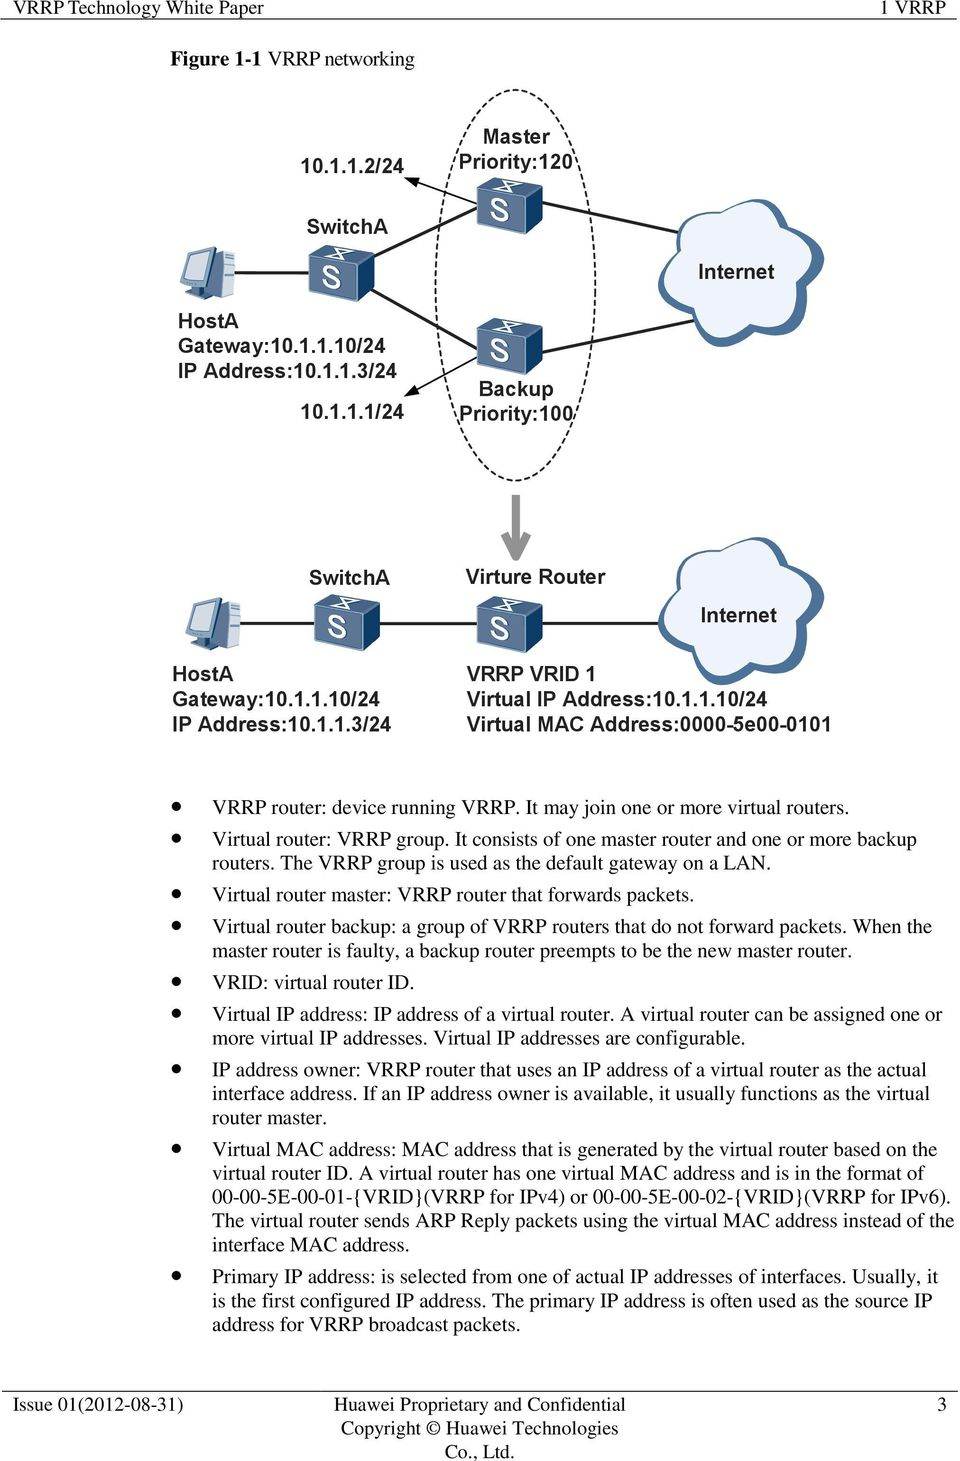 Virtual router: VRRP group. It consists of one master router and one or more backup routers. The VRRP group is used as the default gateway on a LAN.